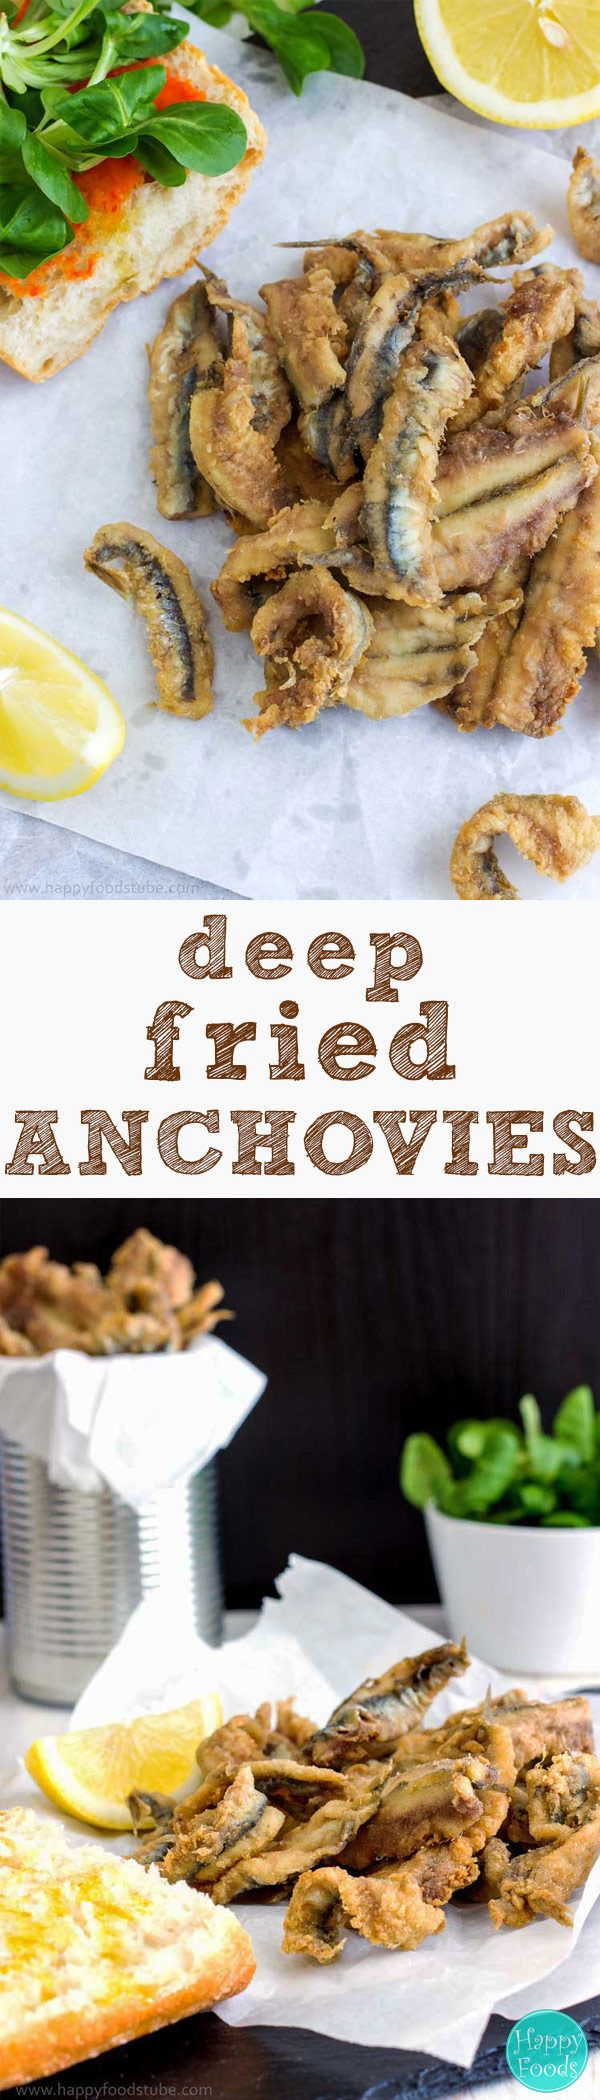 Deep Fried Anchovies - Easy Spanish seafood tapas with freshly squized lemon juice, Spanish food, fish, starter, appetizer, recipe, tapa, Spain | happyfoodstube.com